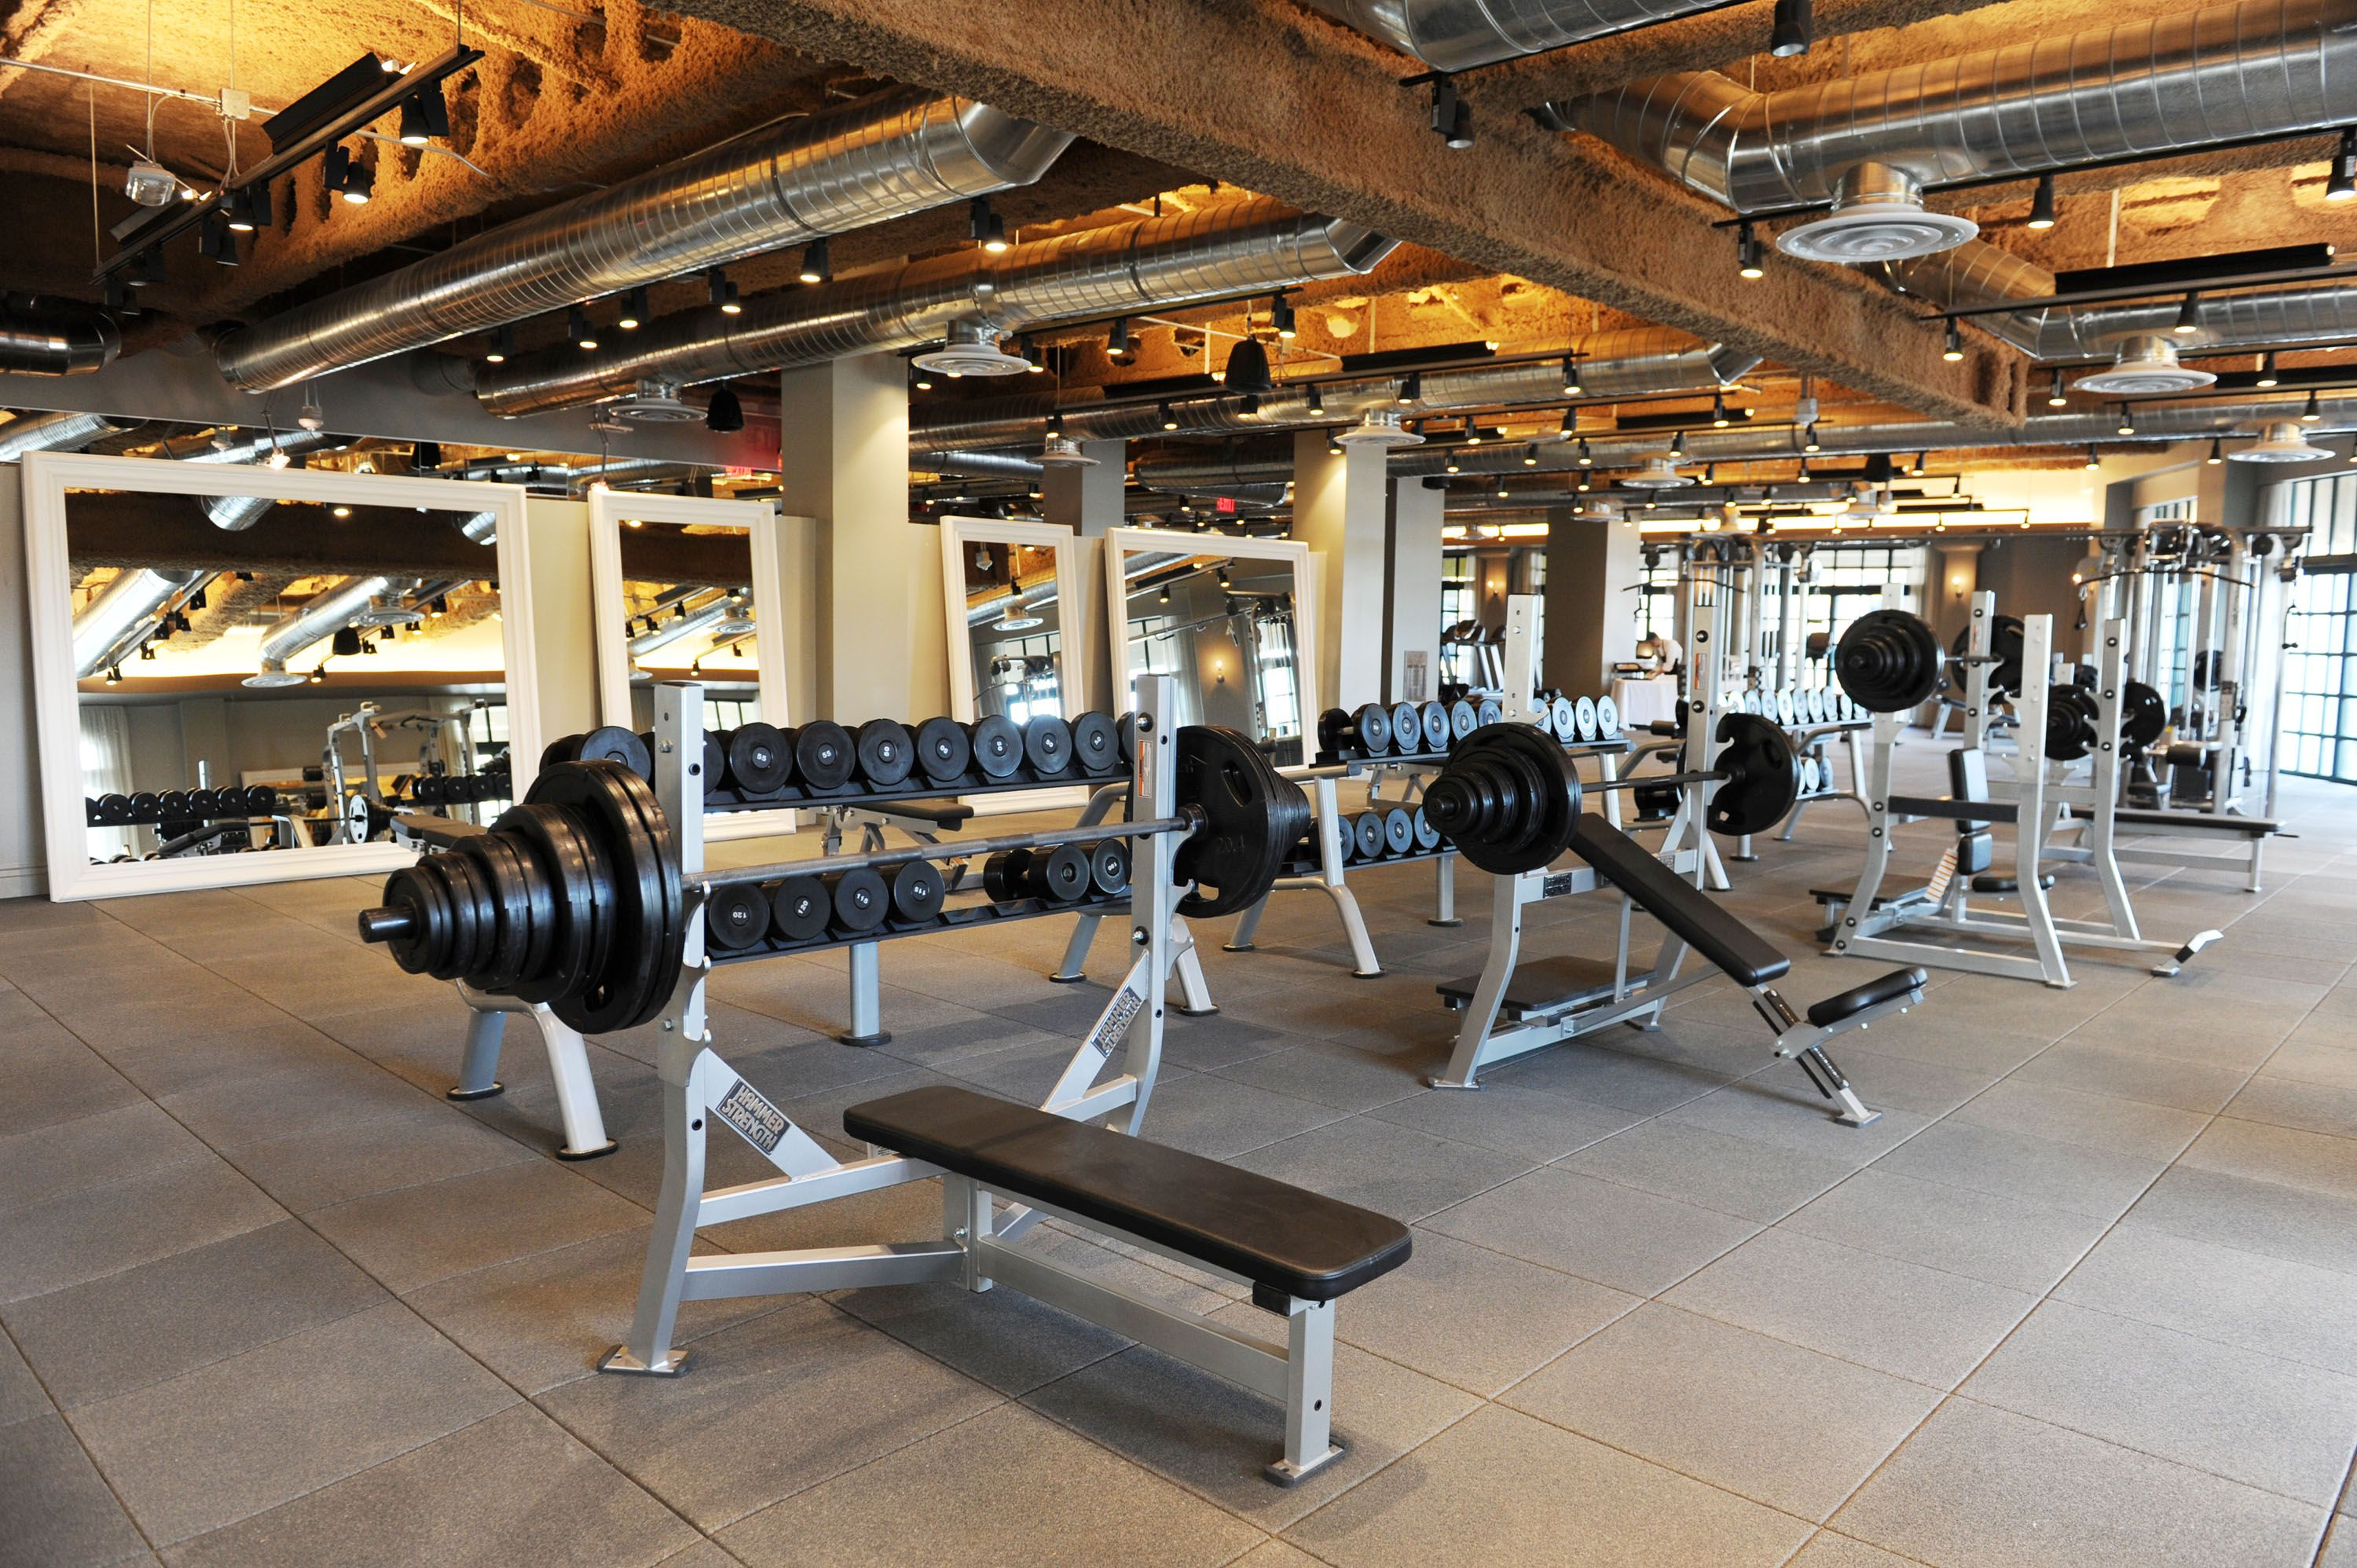 David Barton Gym Completed Projects Pinterest Gym Gym Design And Gym Interior